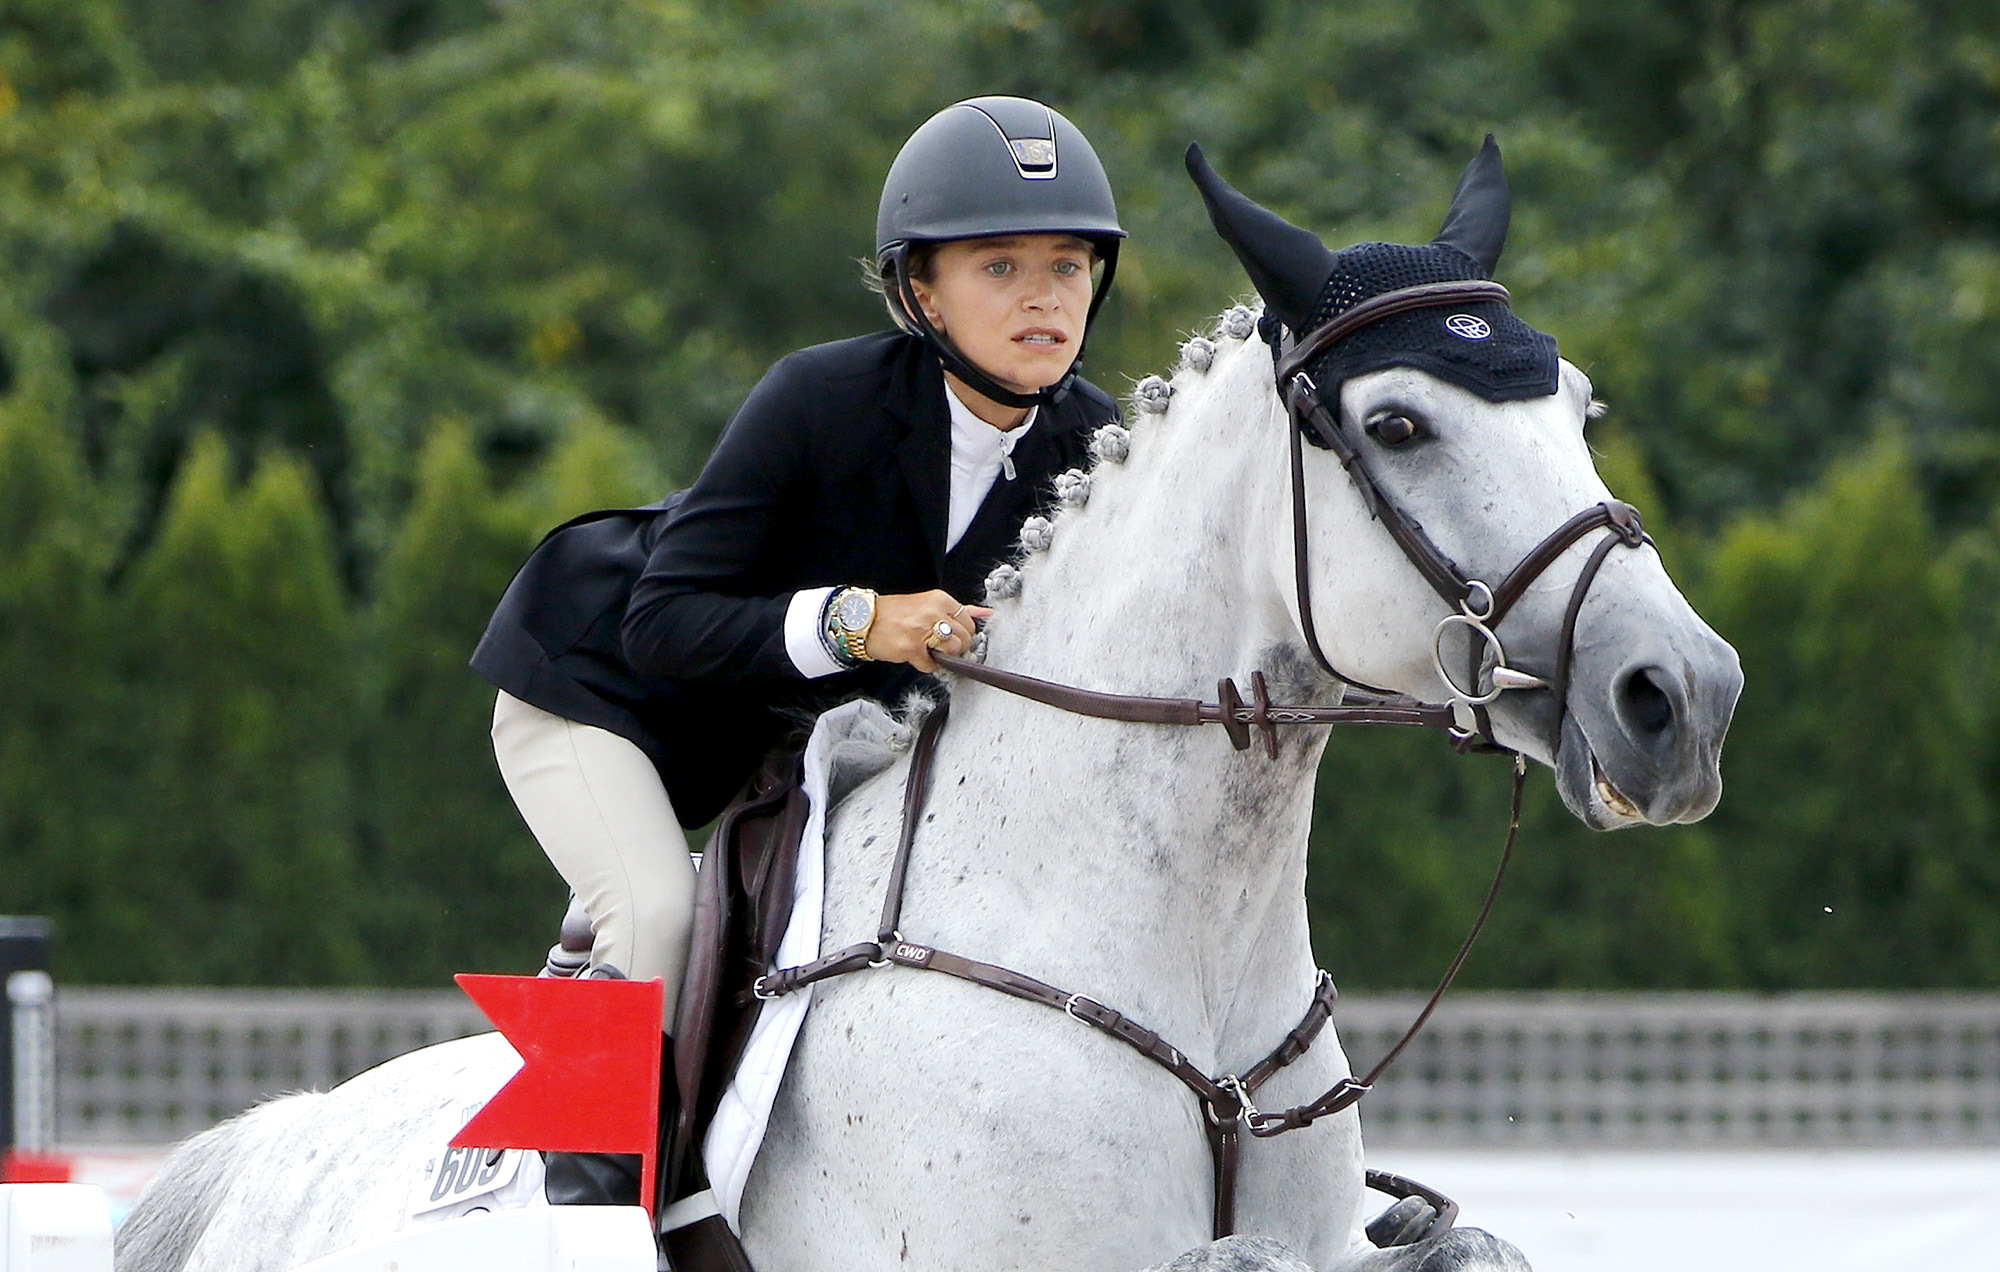 Photo of Mary-Kate Olsen Wears All Her Wedding Jewelry While Competing in Hamptons Horse Show